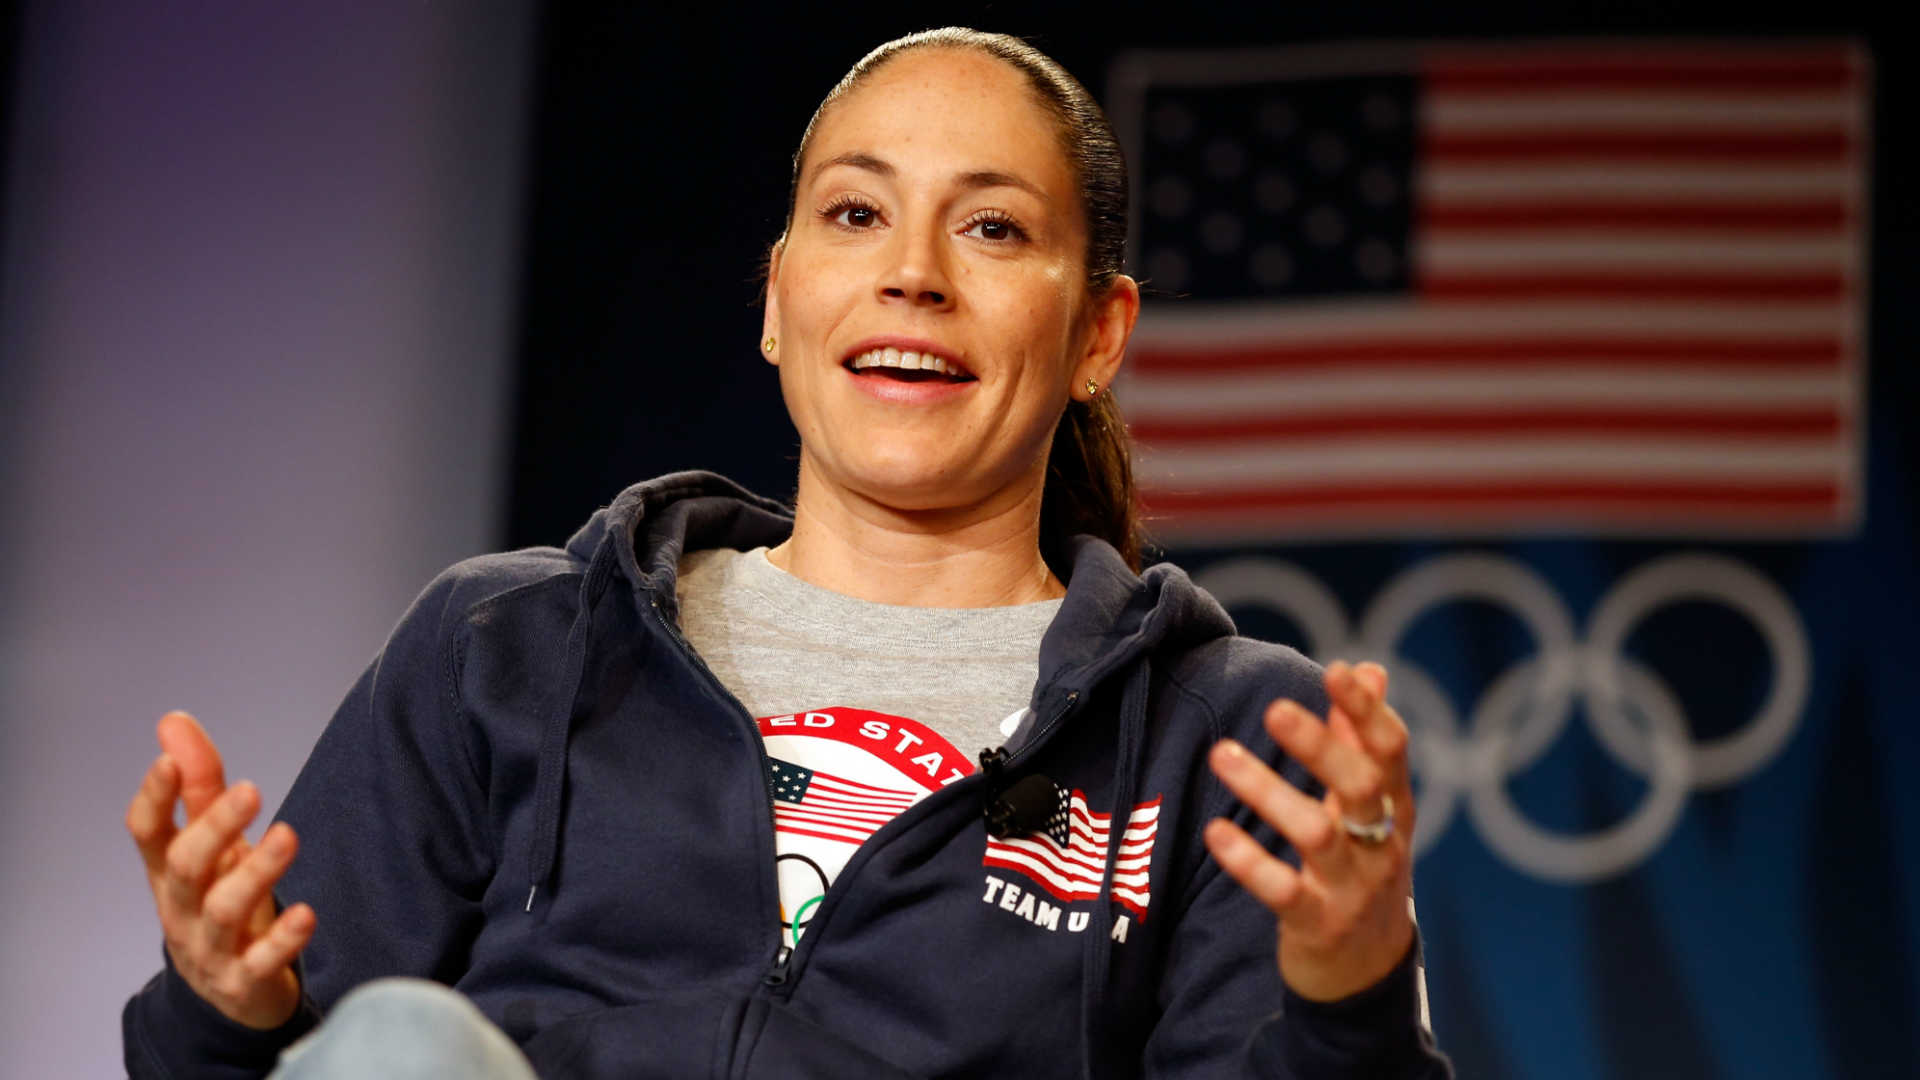 Nuggets add WNBA champ Sue Bird to front office staff